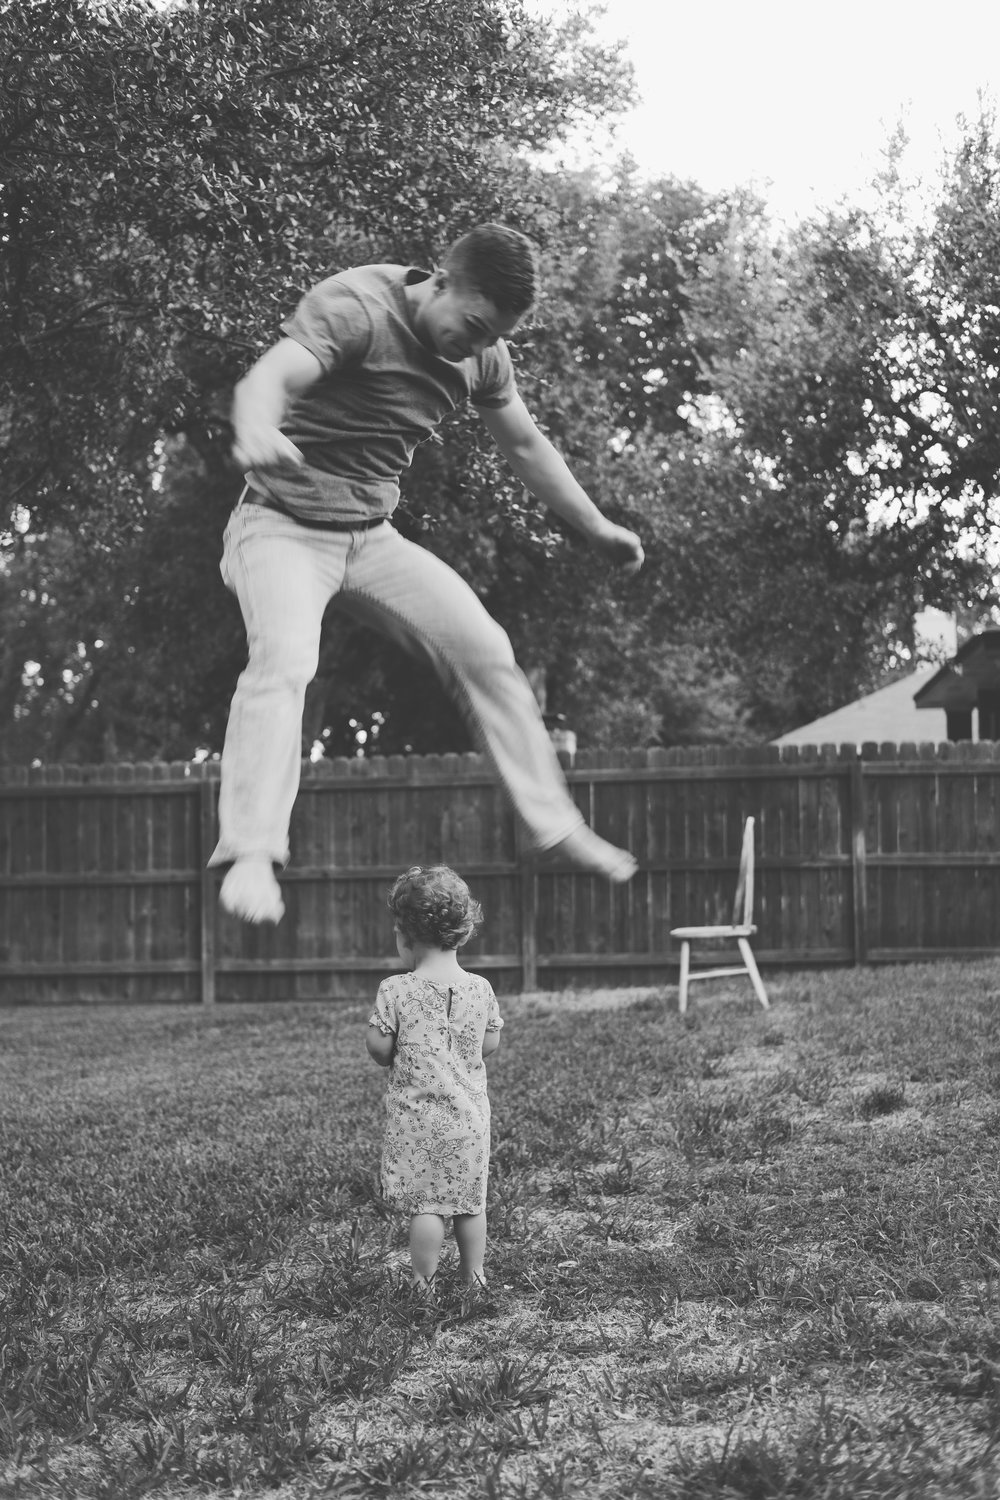 Man jumping over young child in yard